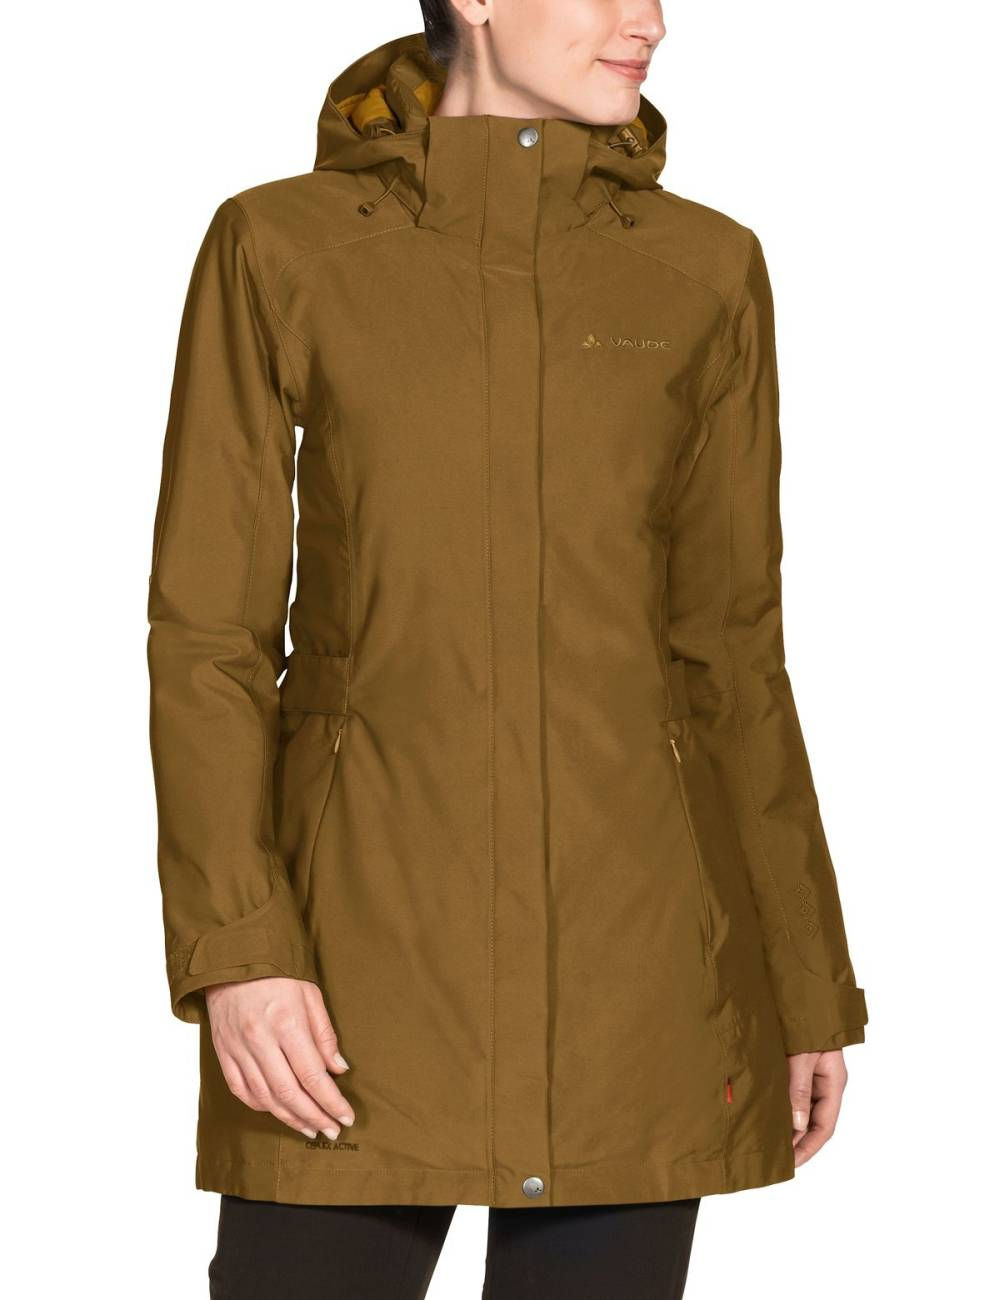 vaude affordable sustainable winter parka